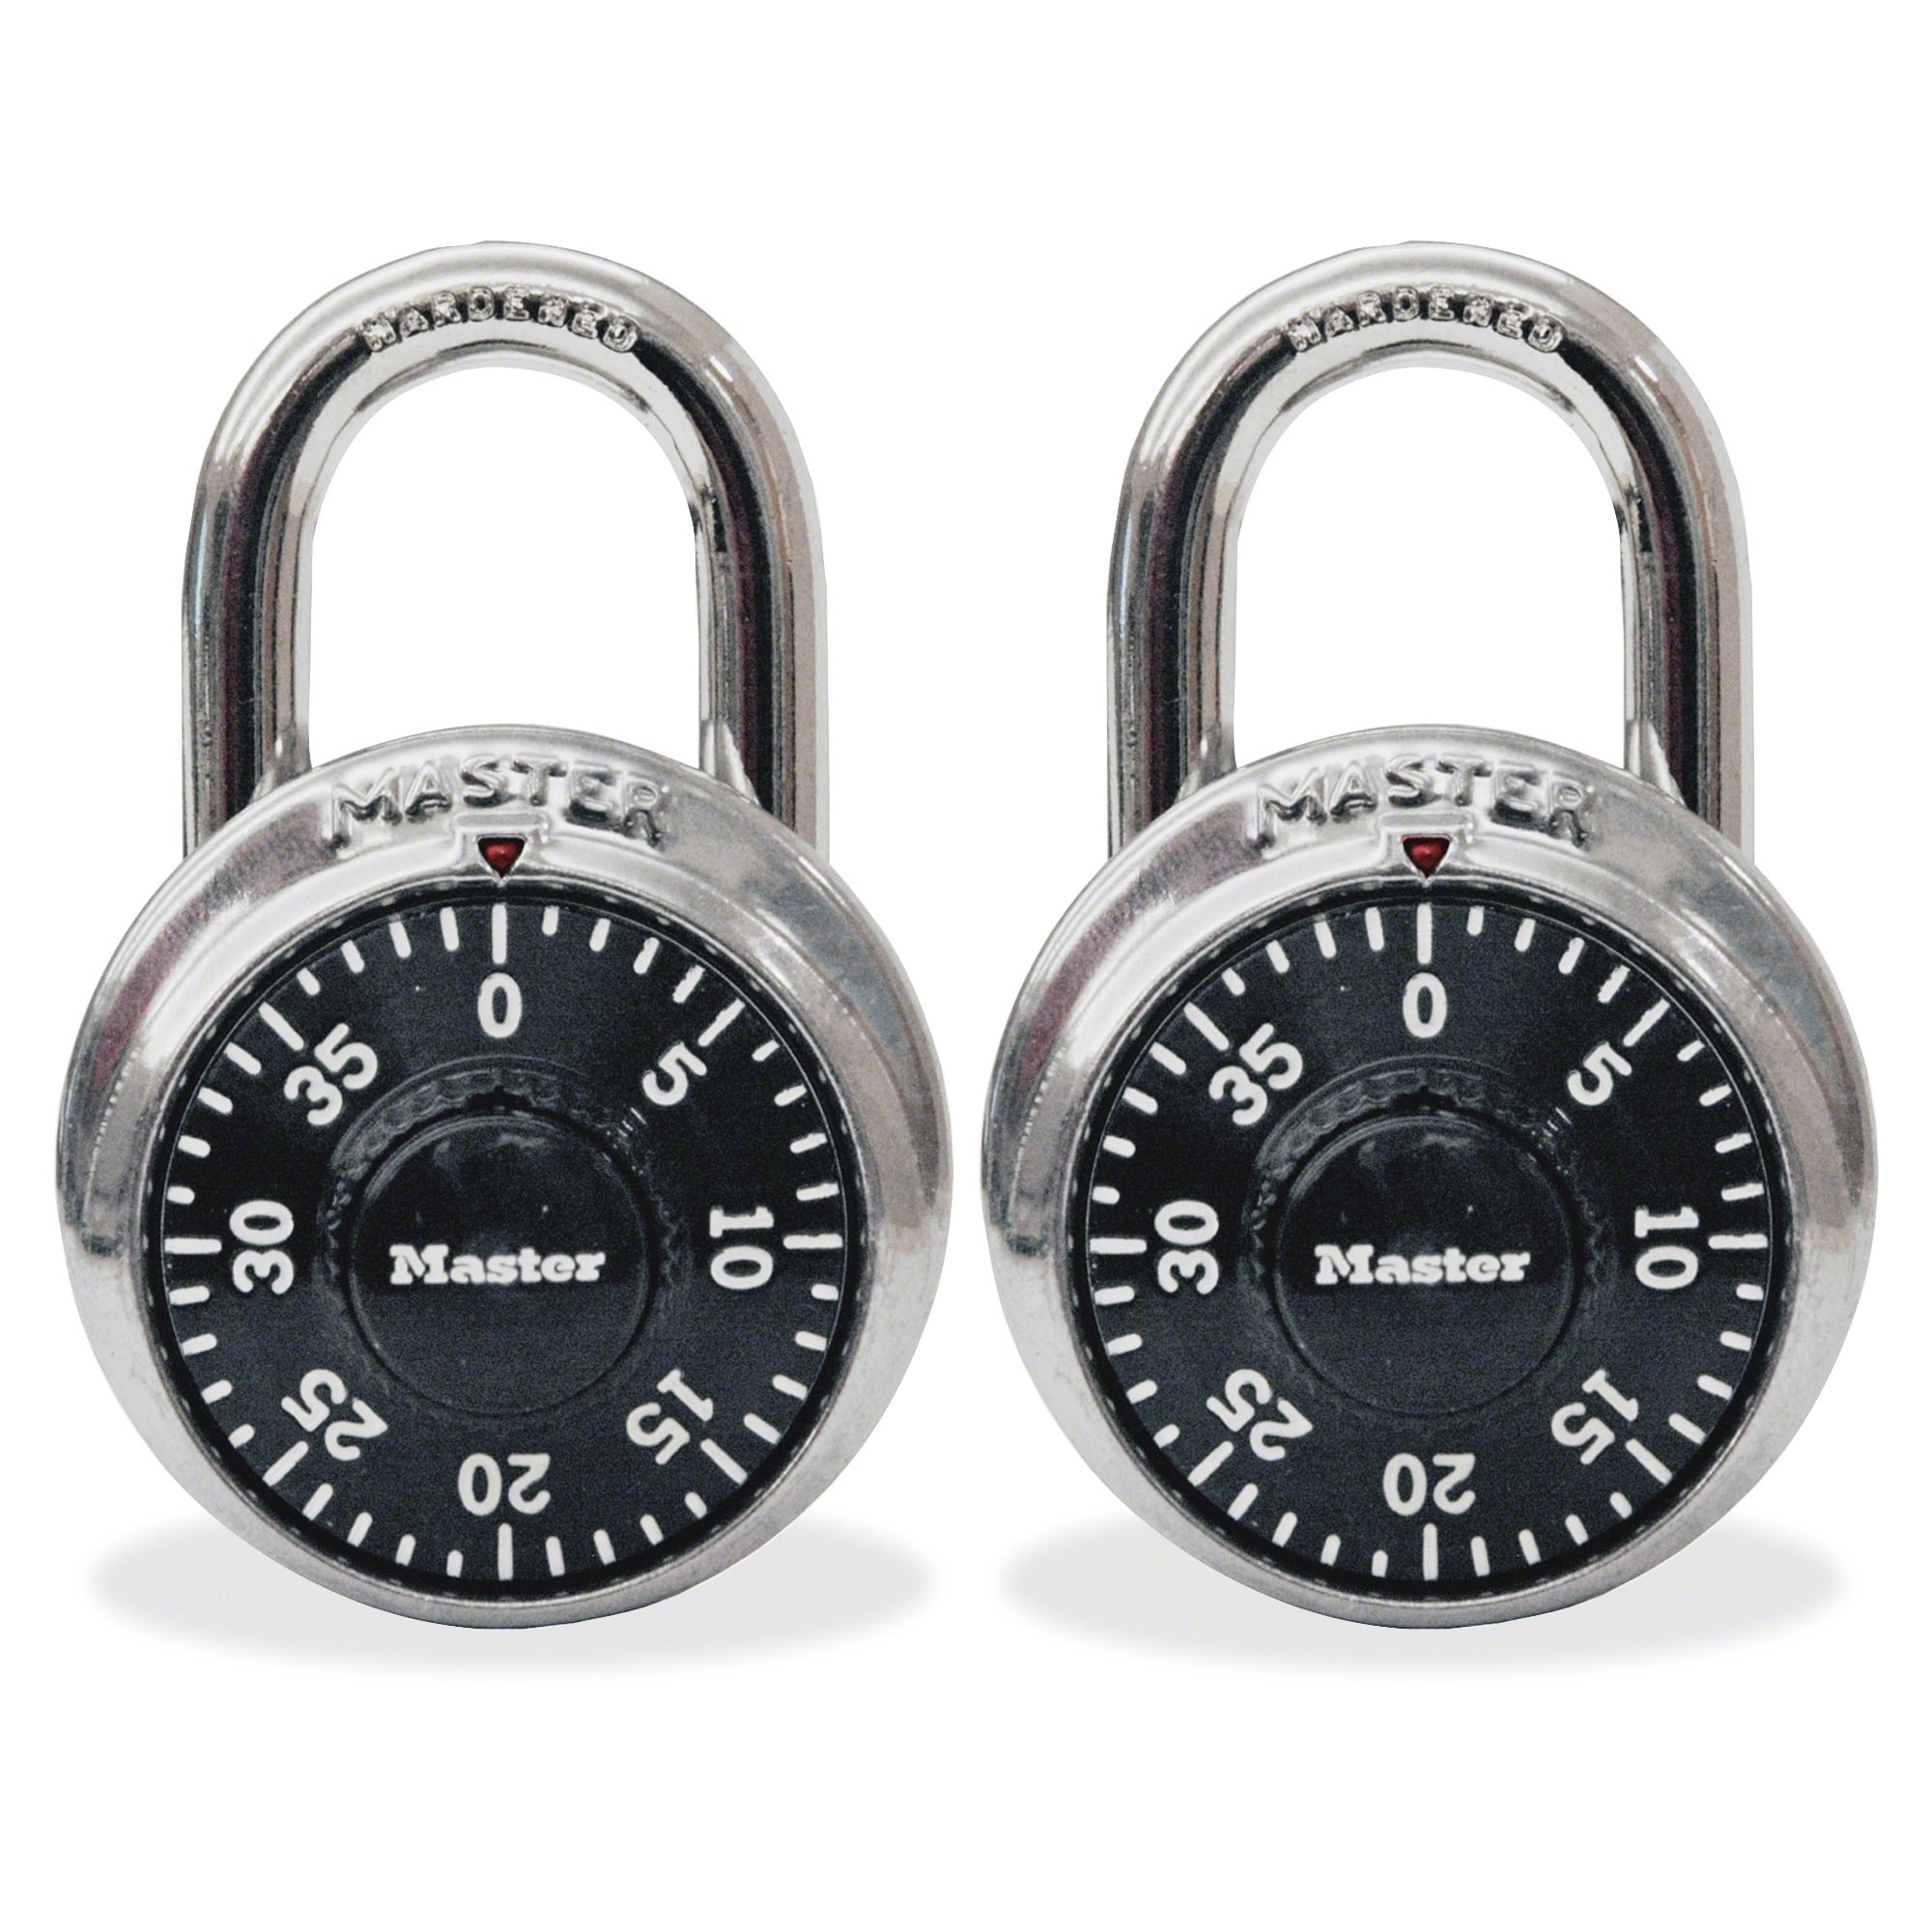 2-Pack Master Combination Lock 1500T $6.70 + Free Store Pickup at Walmart or Free Shipping with Prime